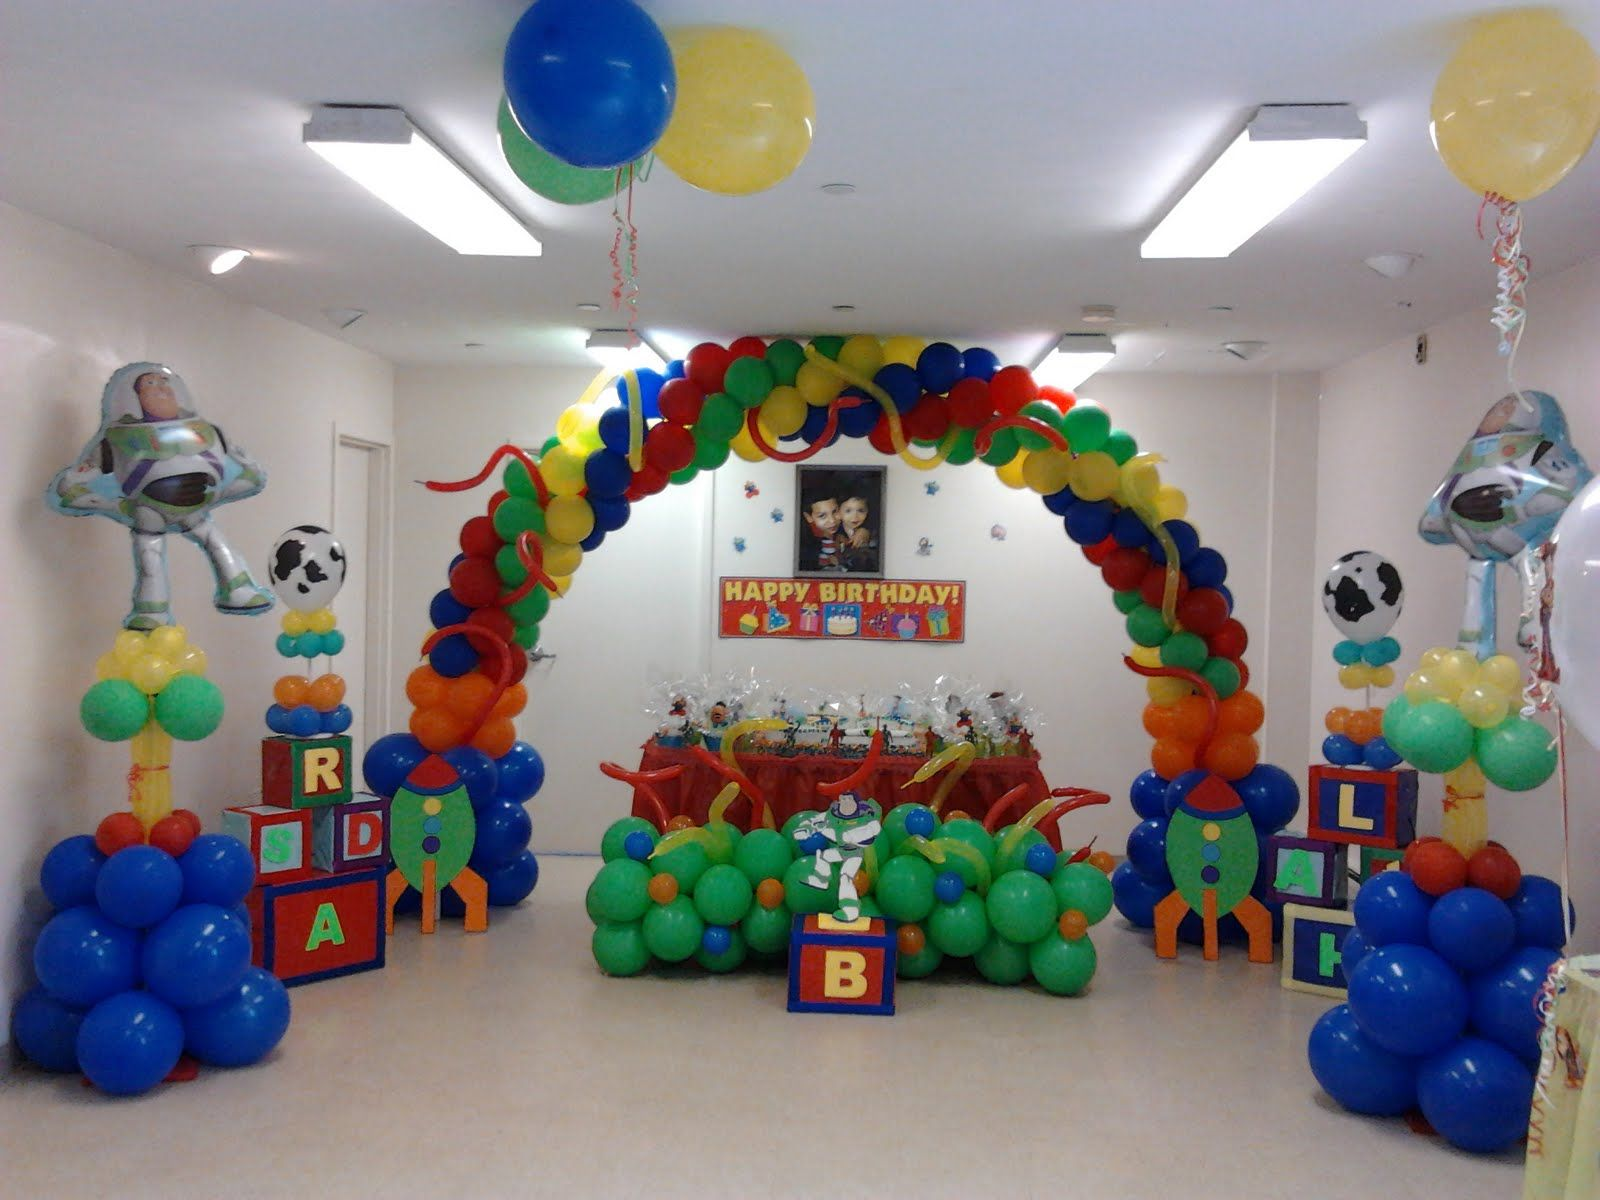 Toy Story Party Decorations - Balloon columns, cake table, and ...